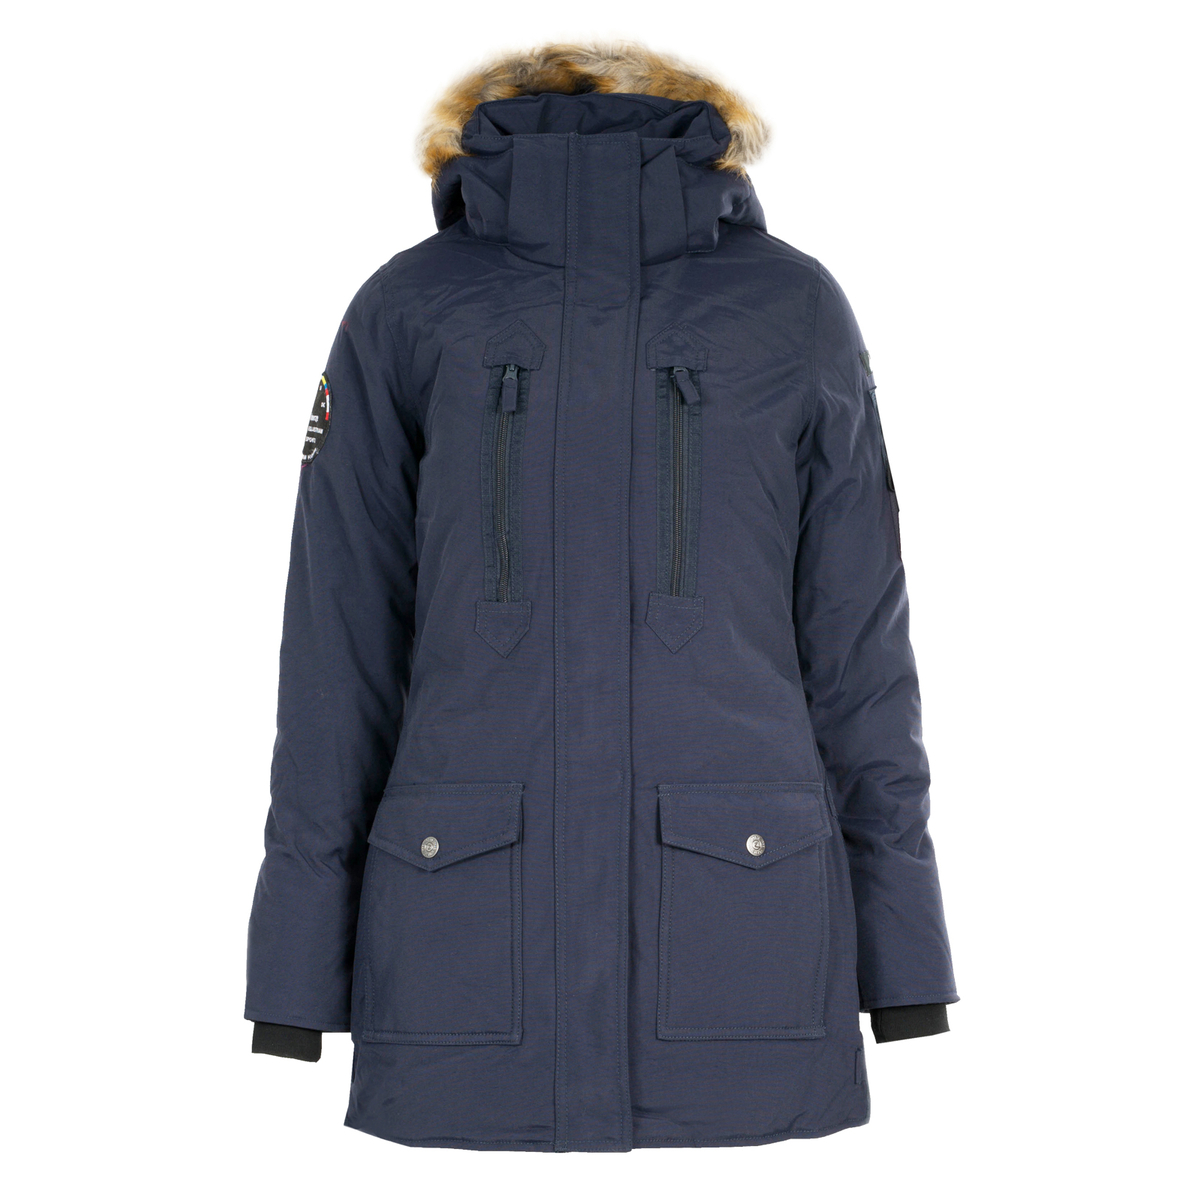 Horze Brooke Women's Long Parka Jacket | Horze